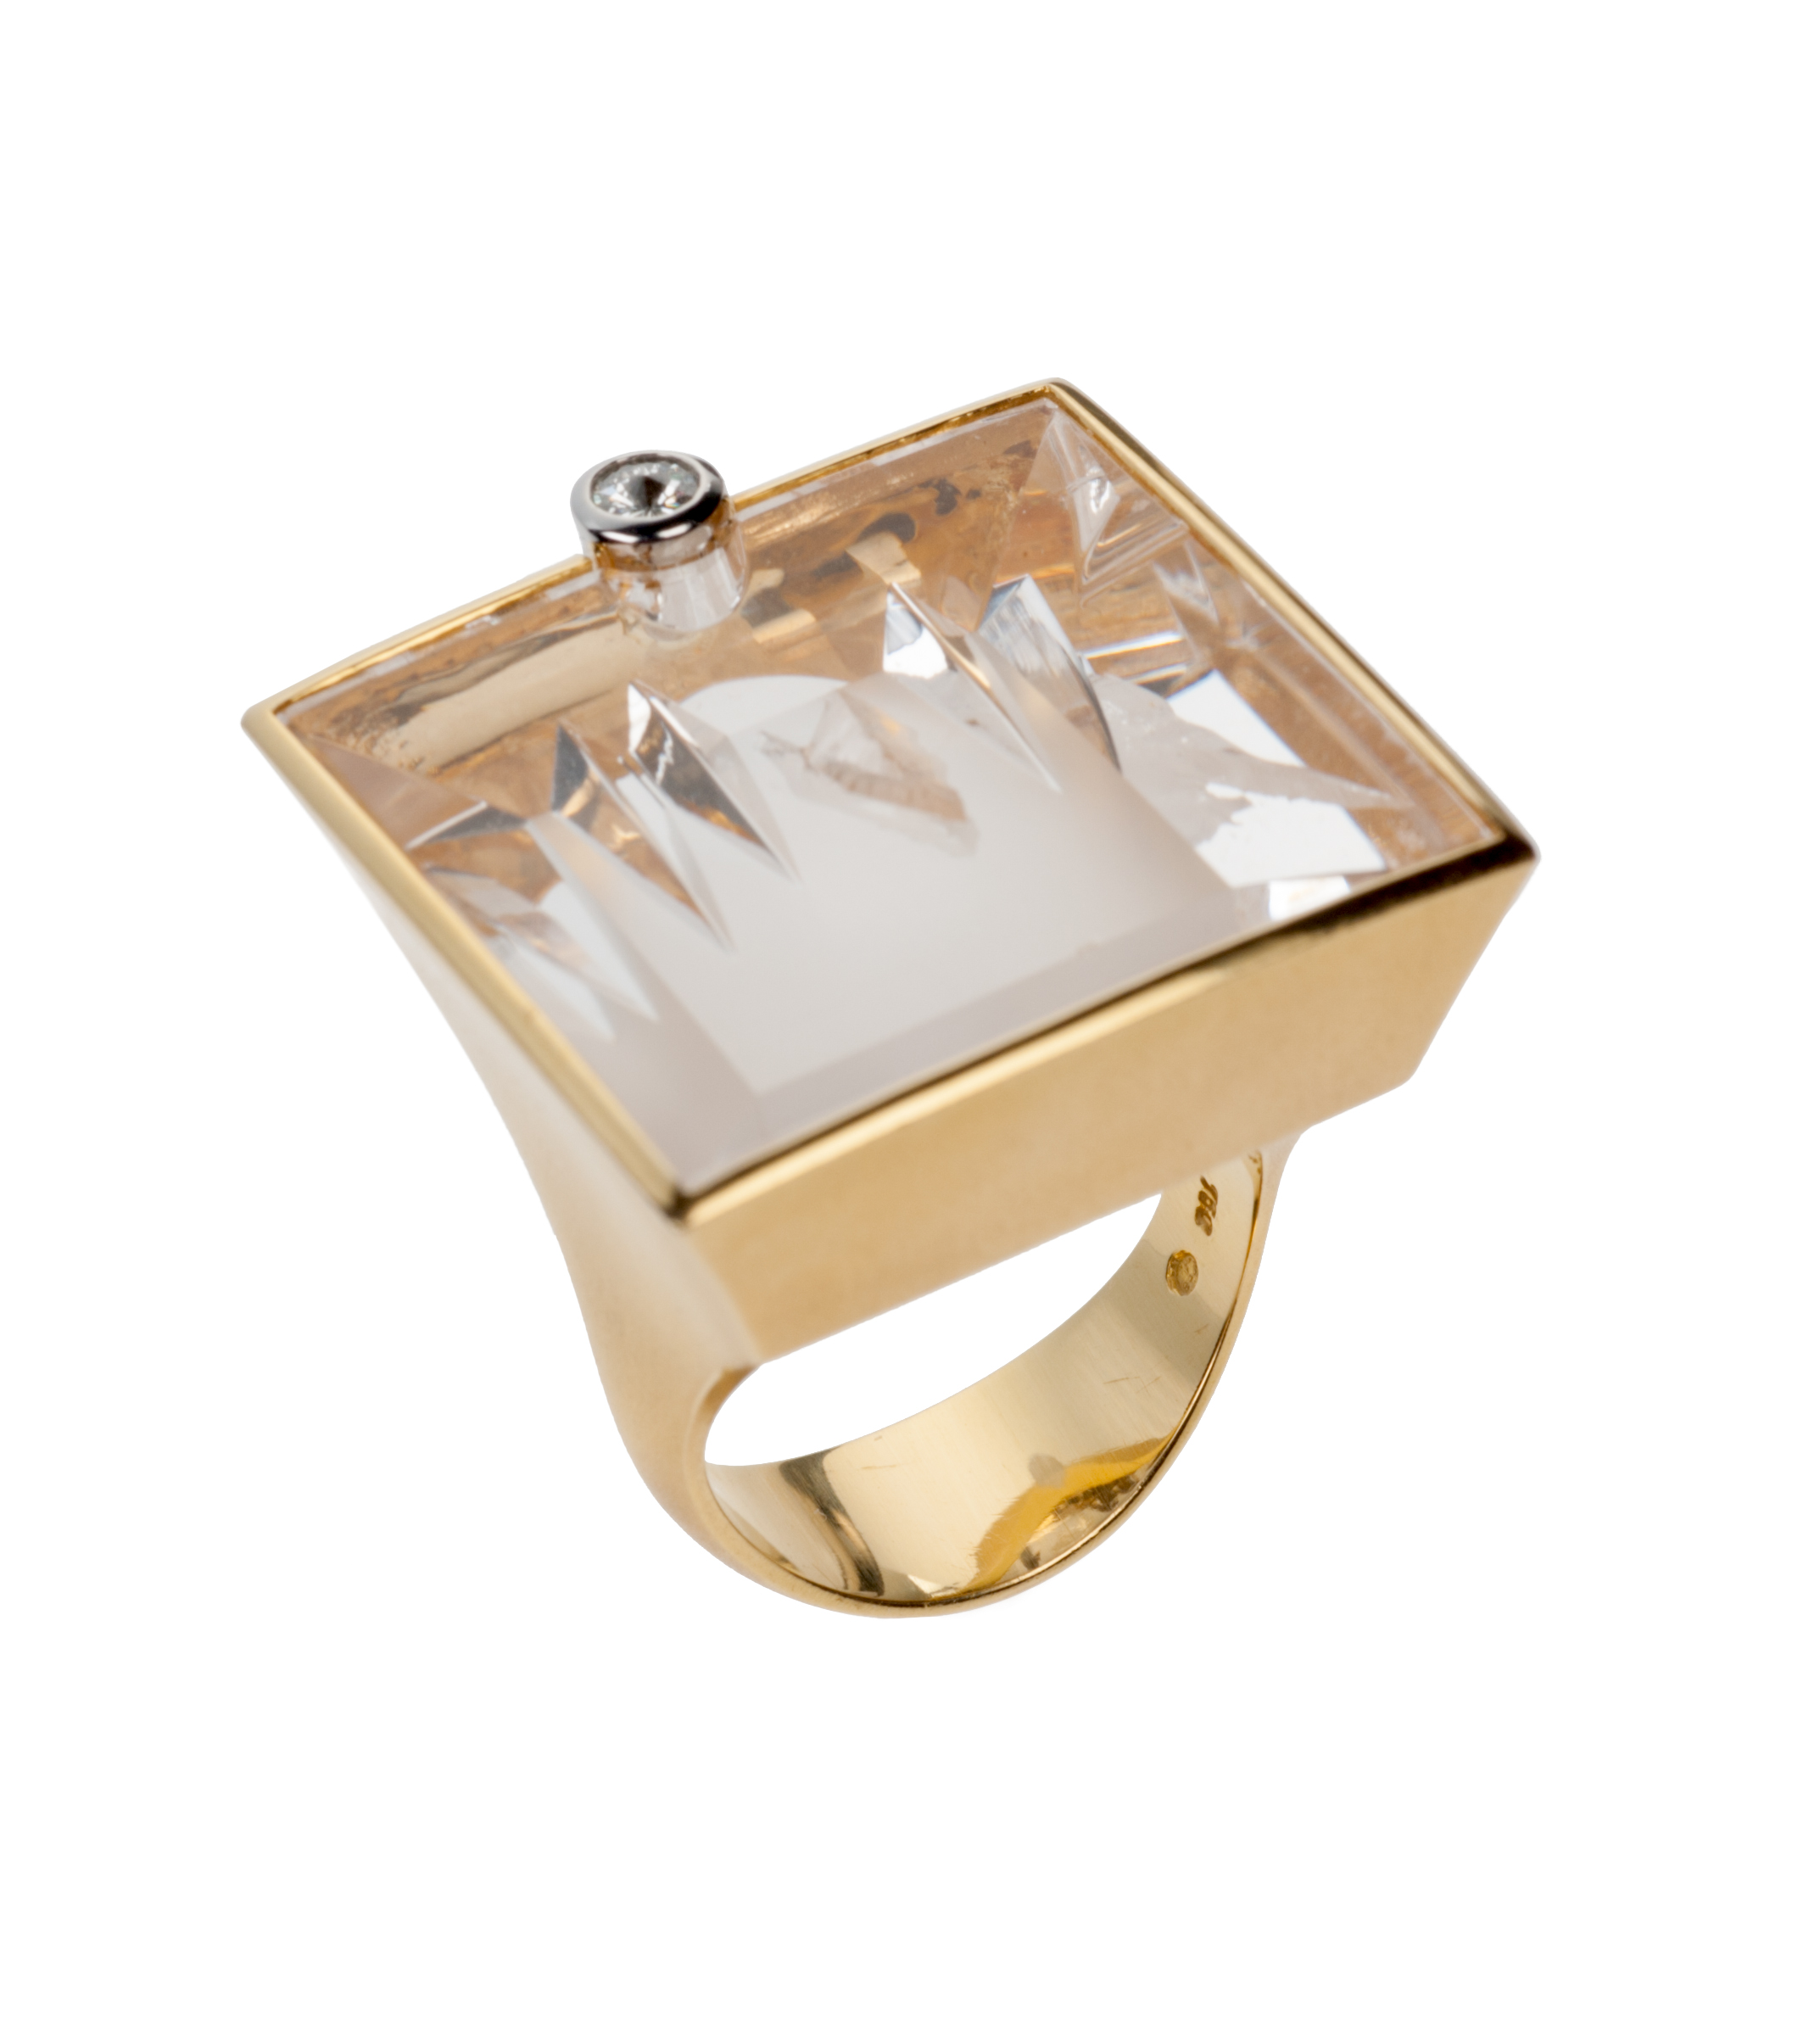 Munsteiner phantom quartz and diamond ring in 18-karat yellow gold